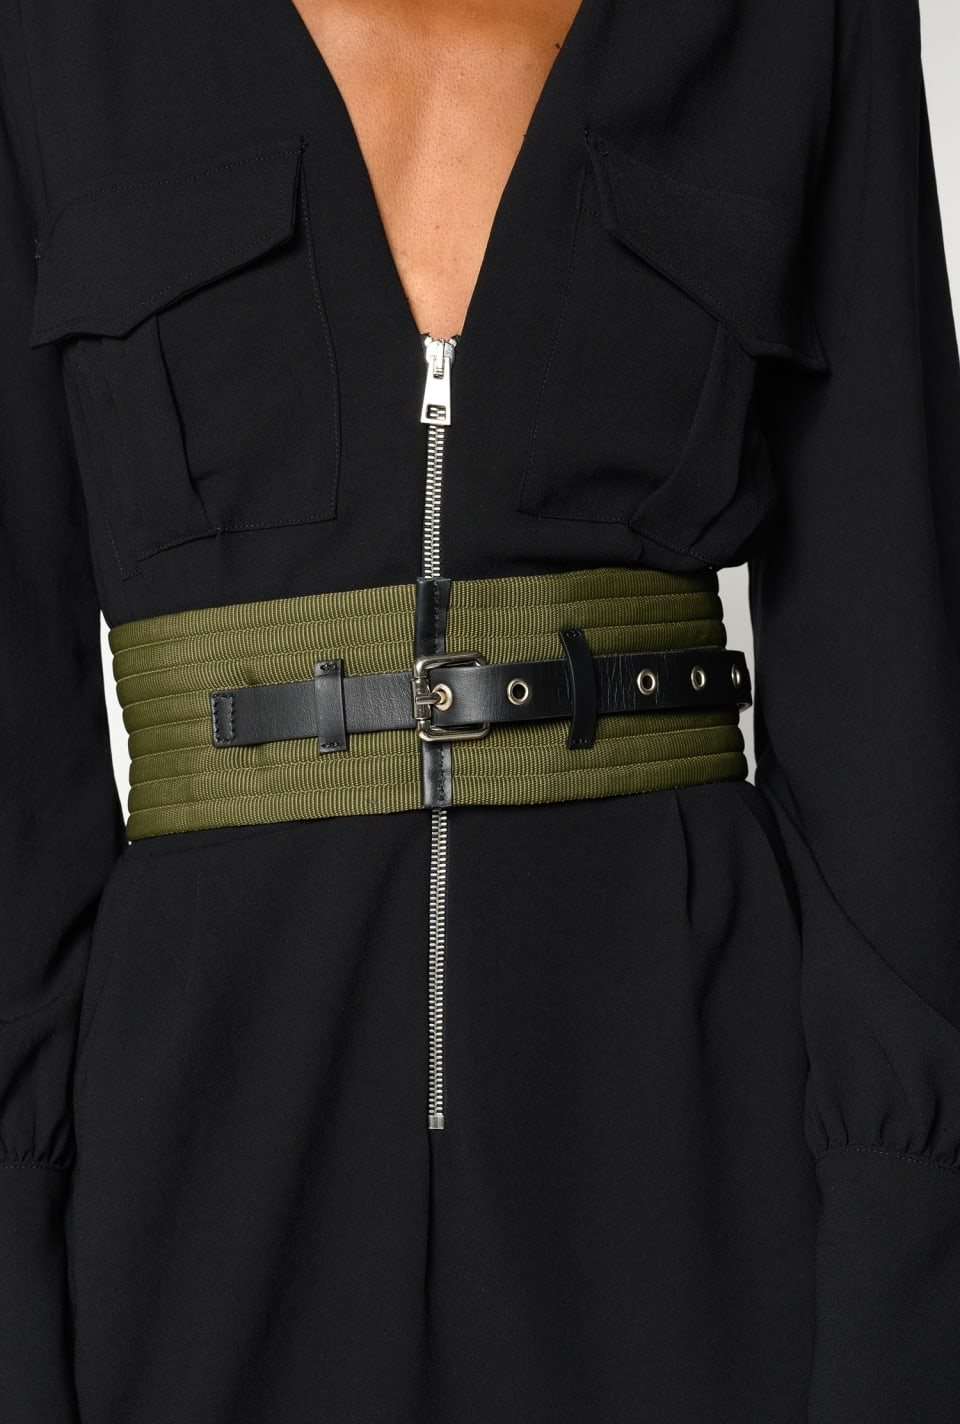 Corset belt in technical ribbon